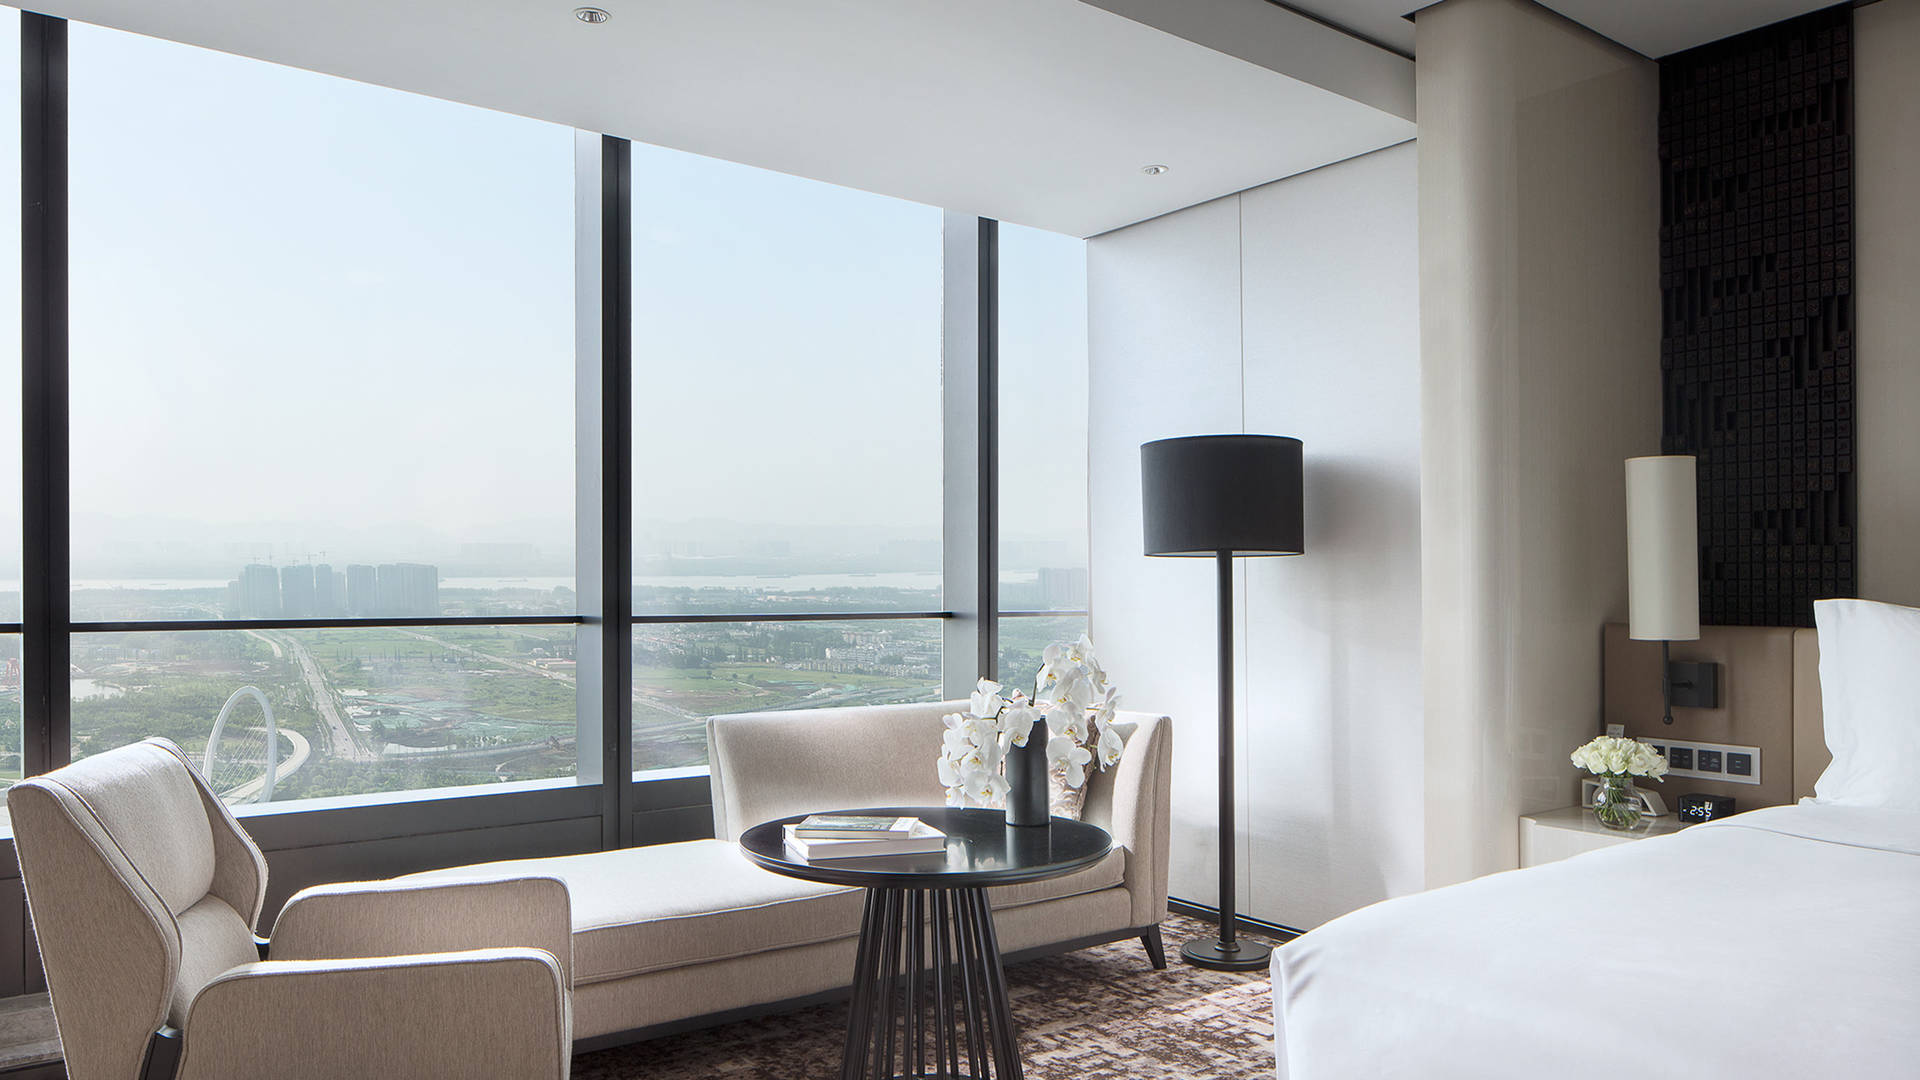 Jummeirah nanjing deluxe king with river view_16-9